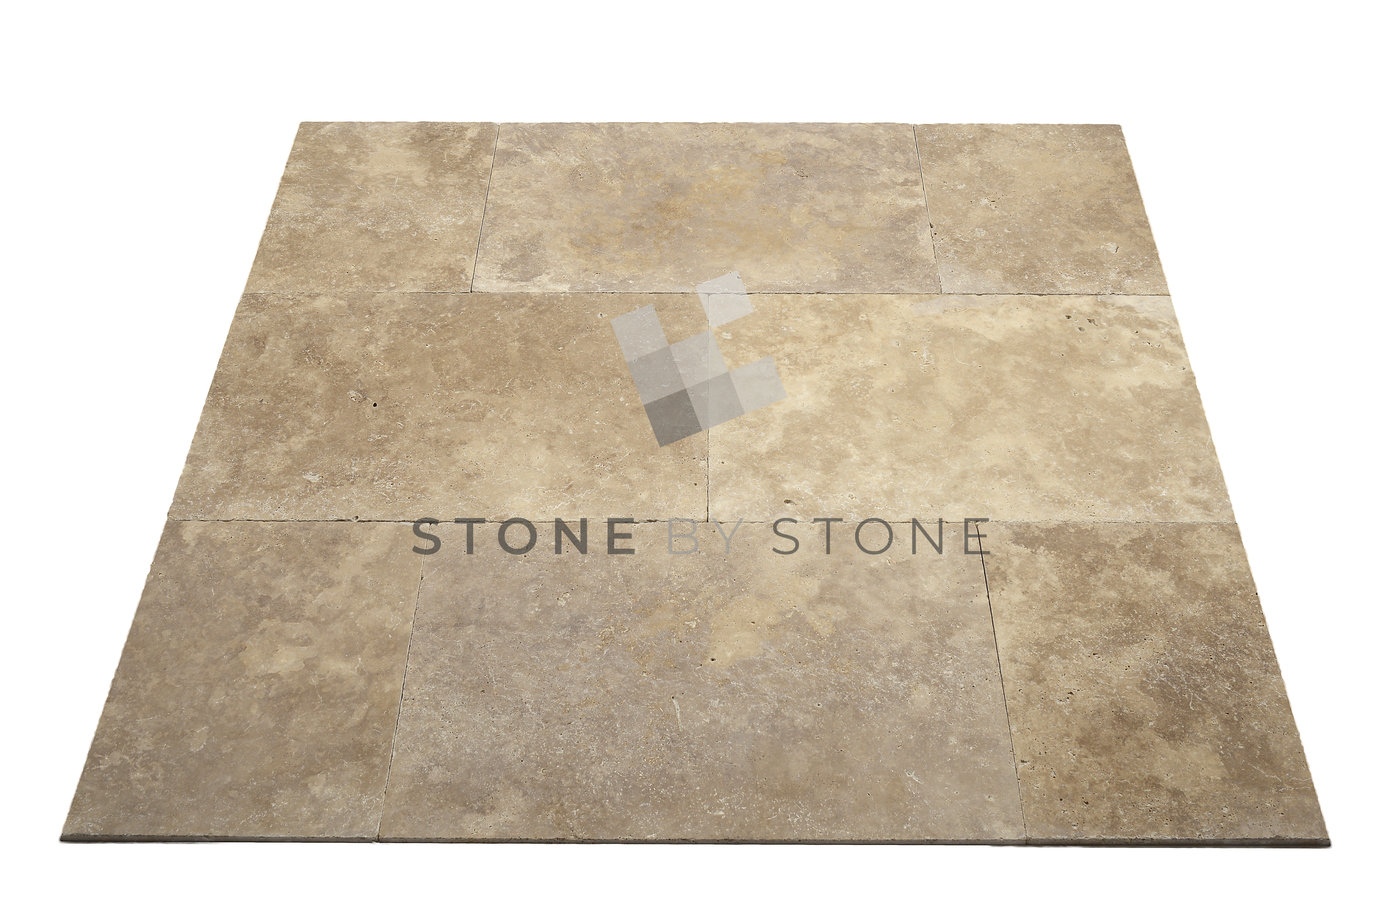 Dallage en Travertin : 60X90/1,5cm - Mix Beige - Vieilli 1er Choix